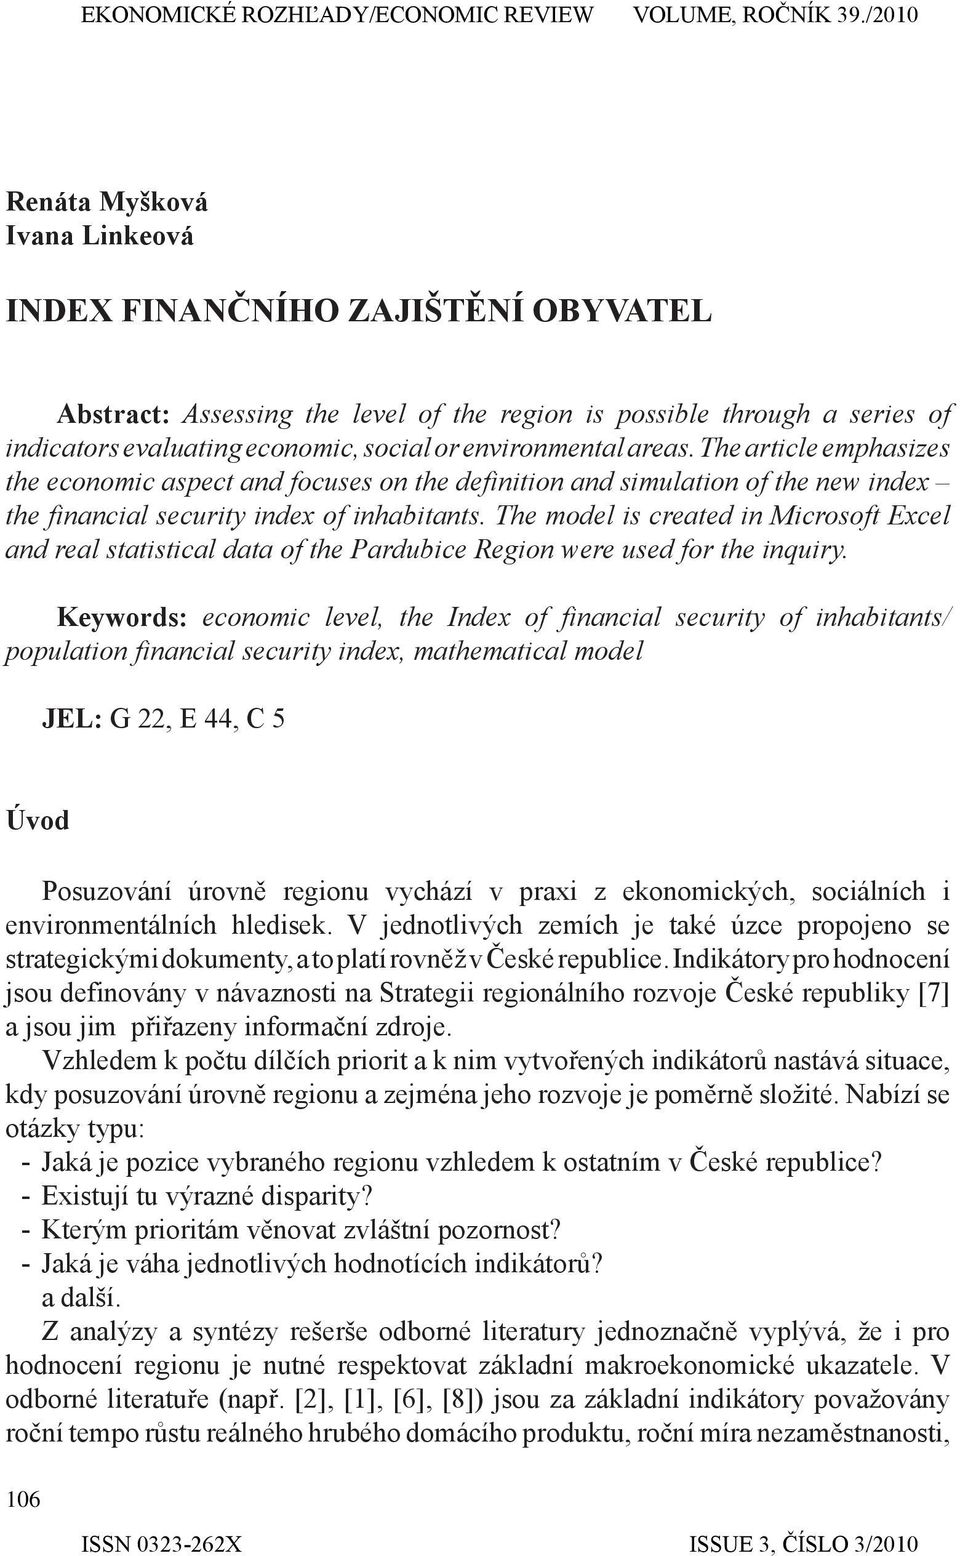 The model is created in Microsoft Excel and real statistical data of the Pardubice Region were used for the inquiry.